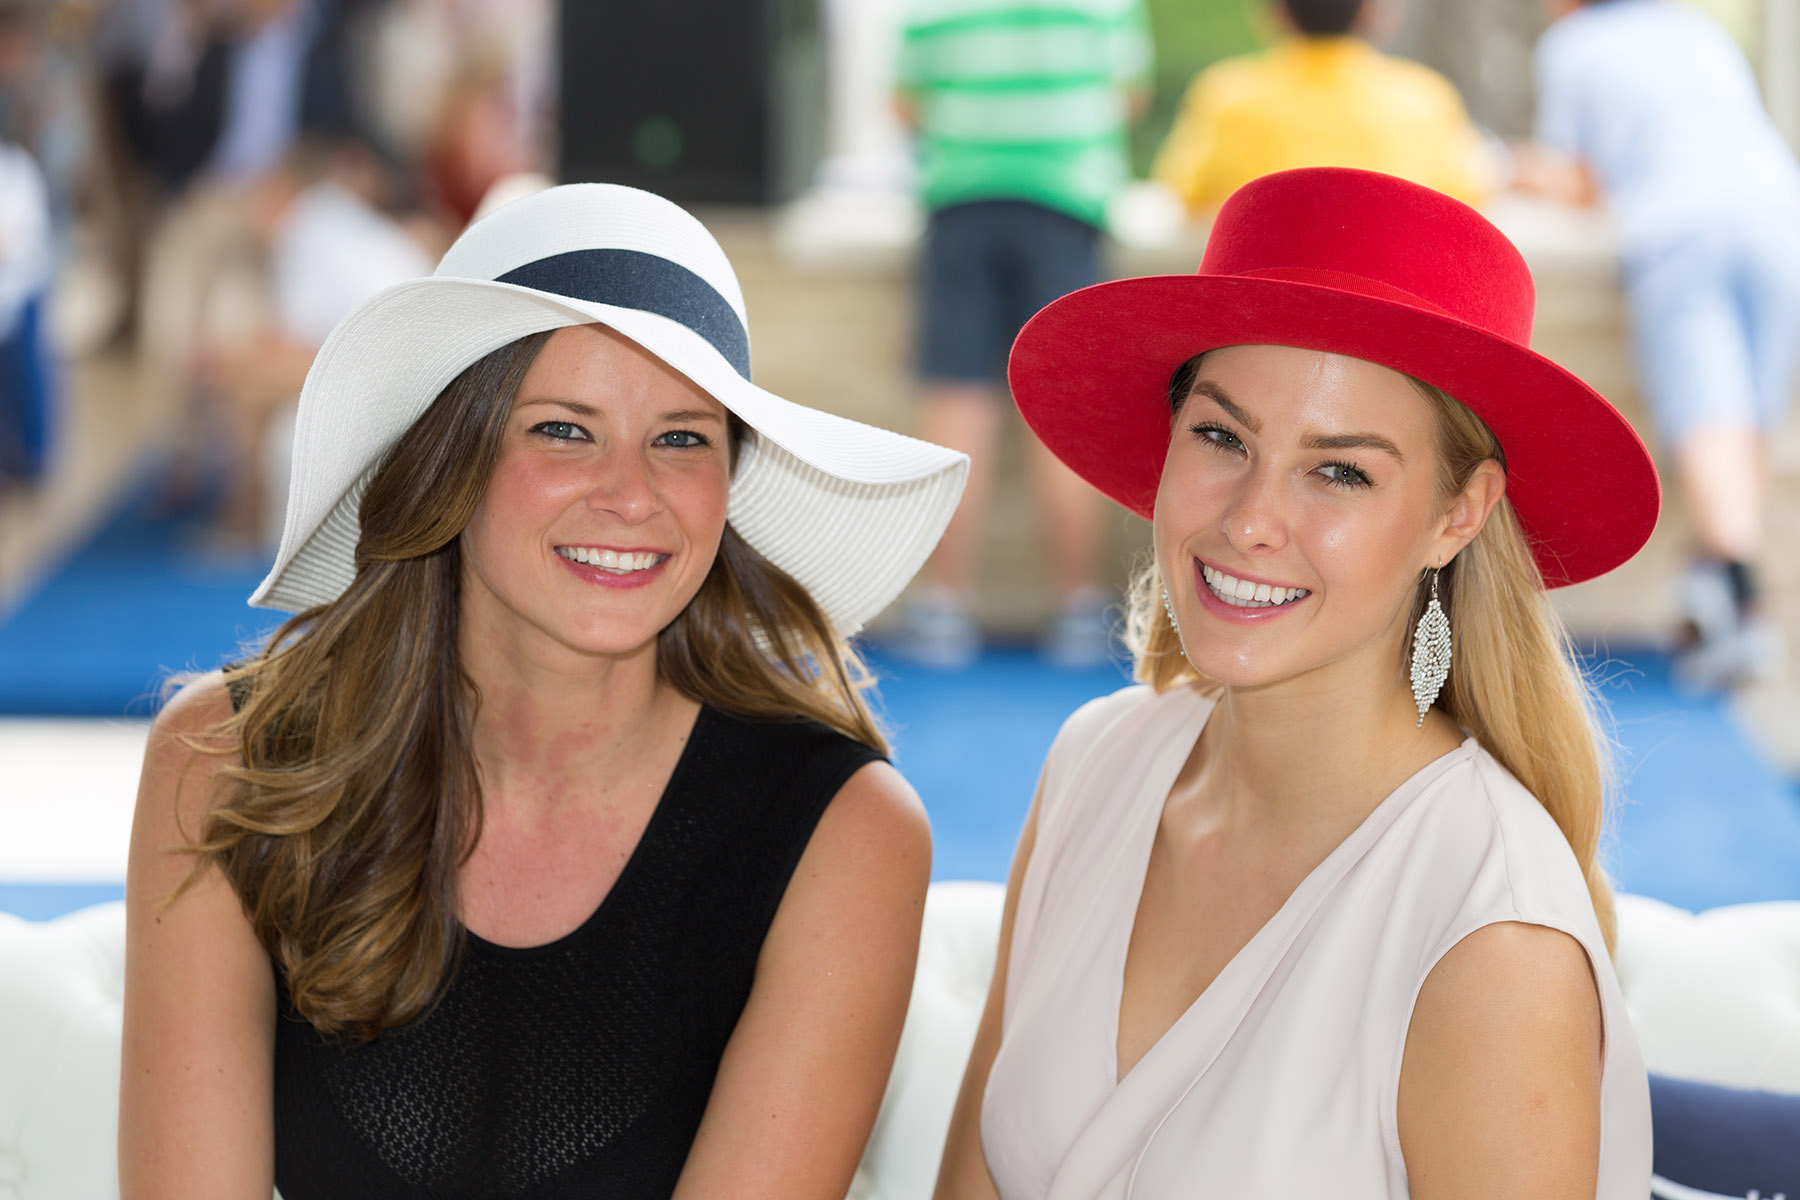 Guests at the Maserati Polo event by Loesje Kessels Fashion Photographer Dubai